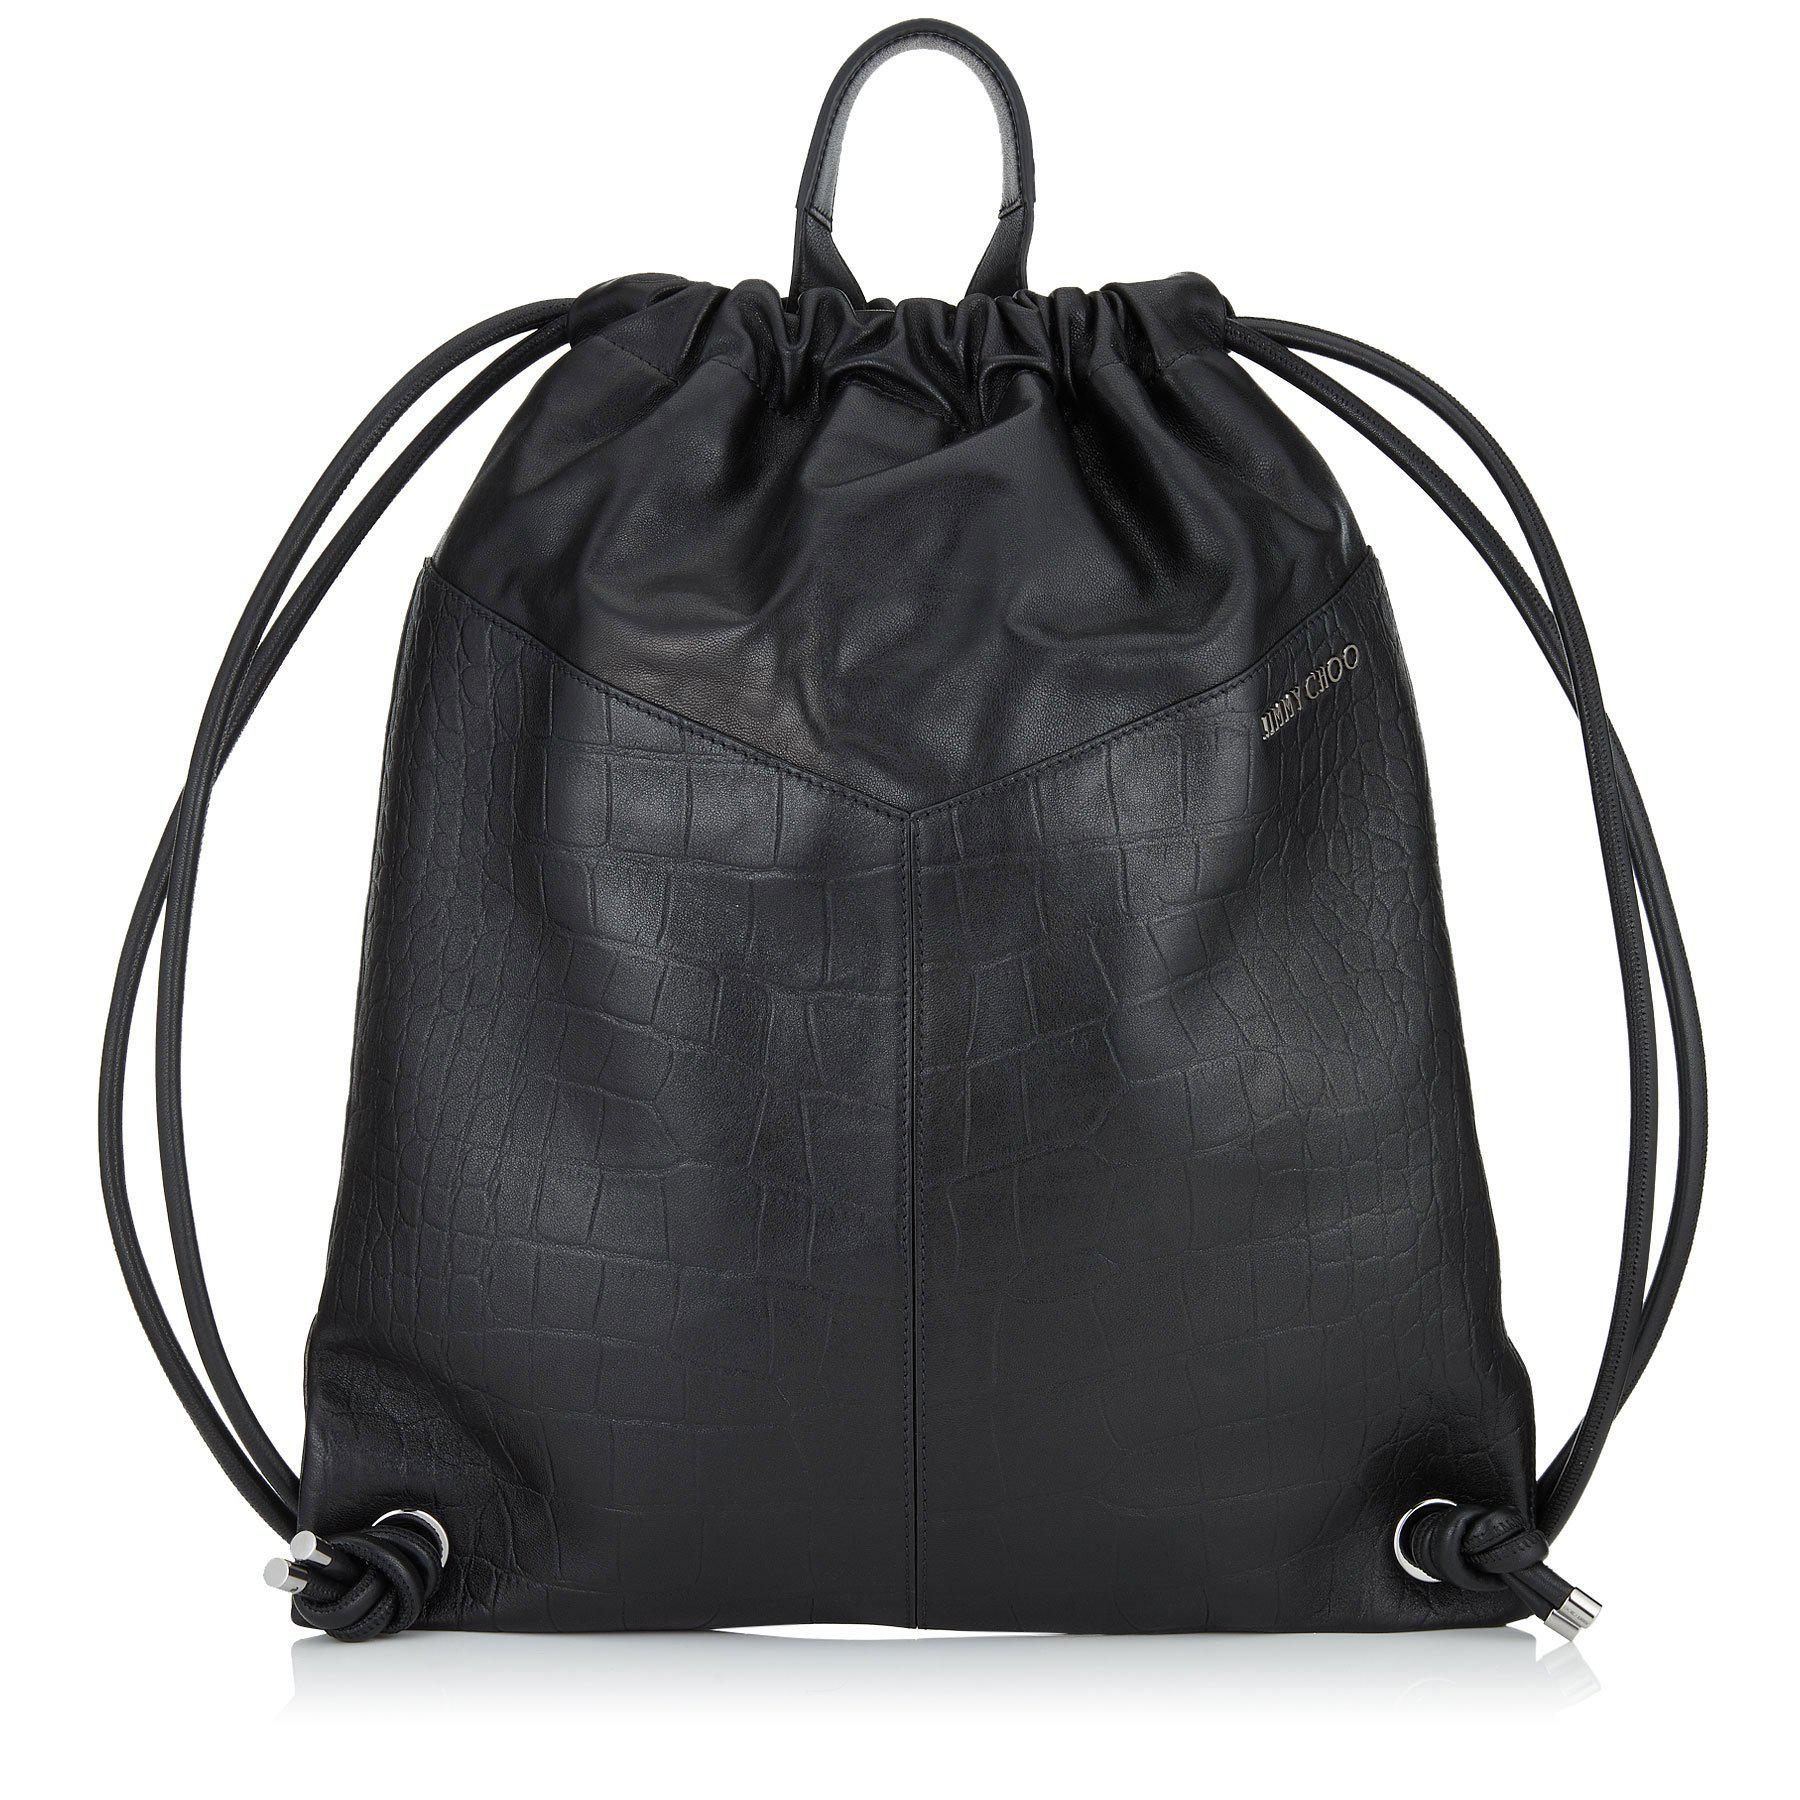 926afc88f438 Jimmy Choo Marlon Black Biker Leather And Nylon Drawstring Backpack With  Stars